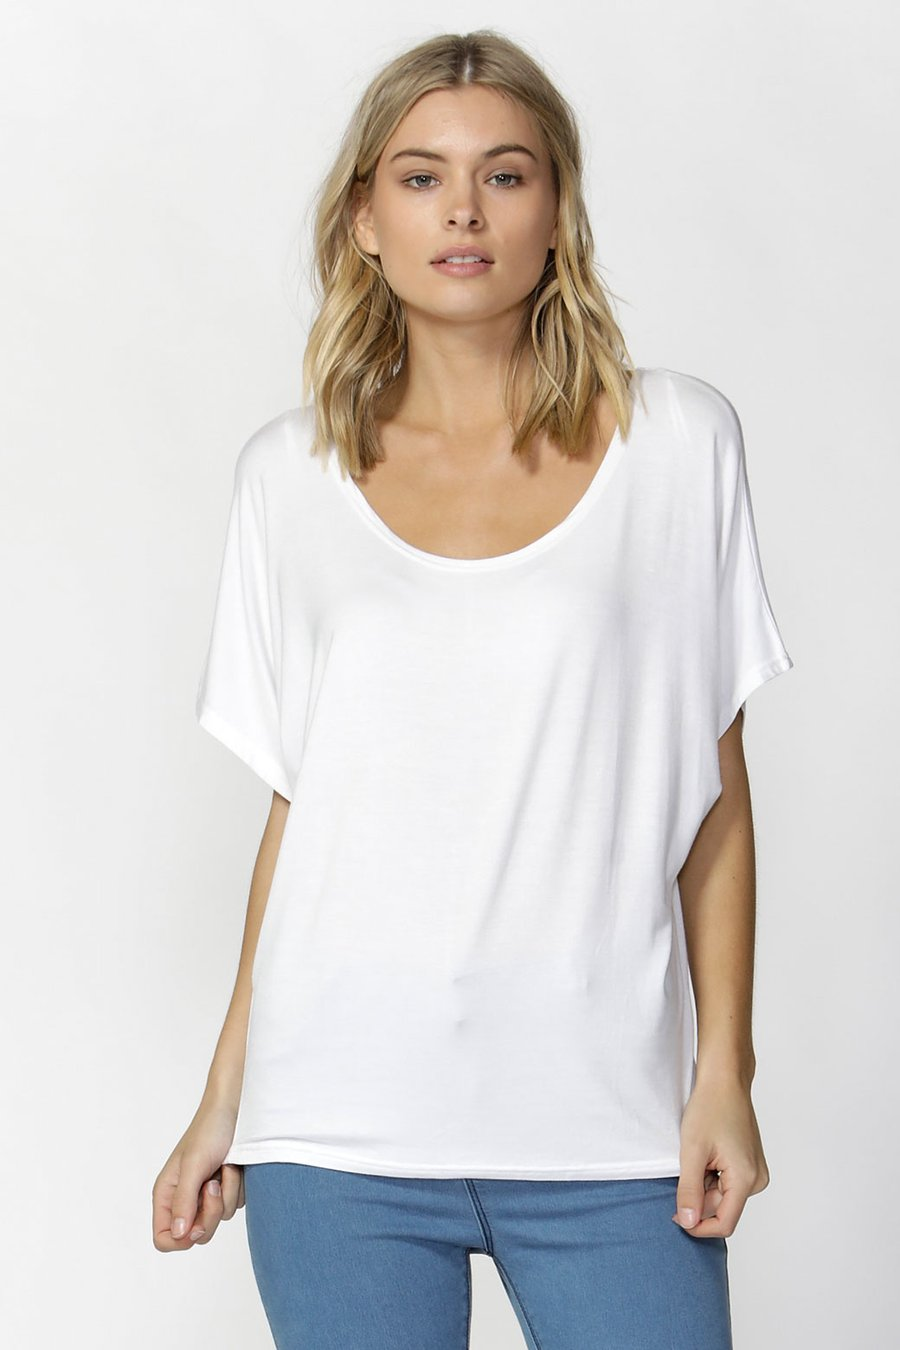 Maui Tee by Betty Basics - White